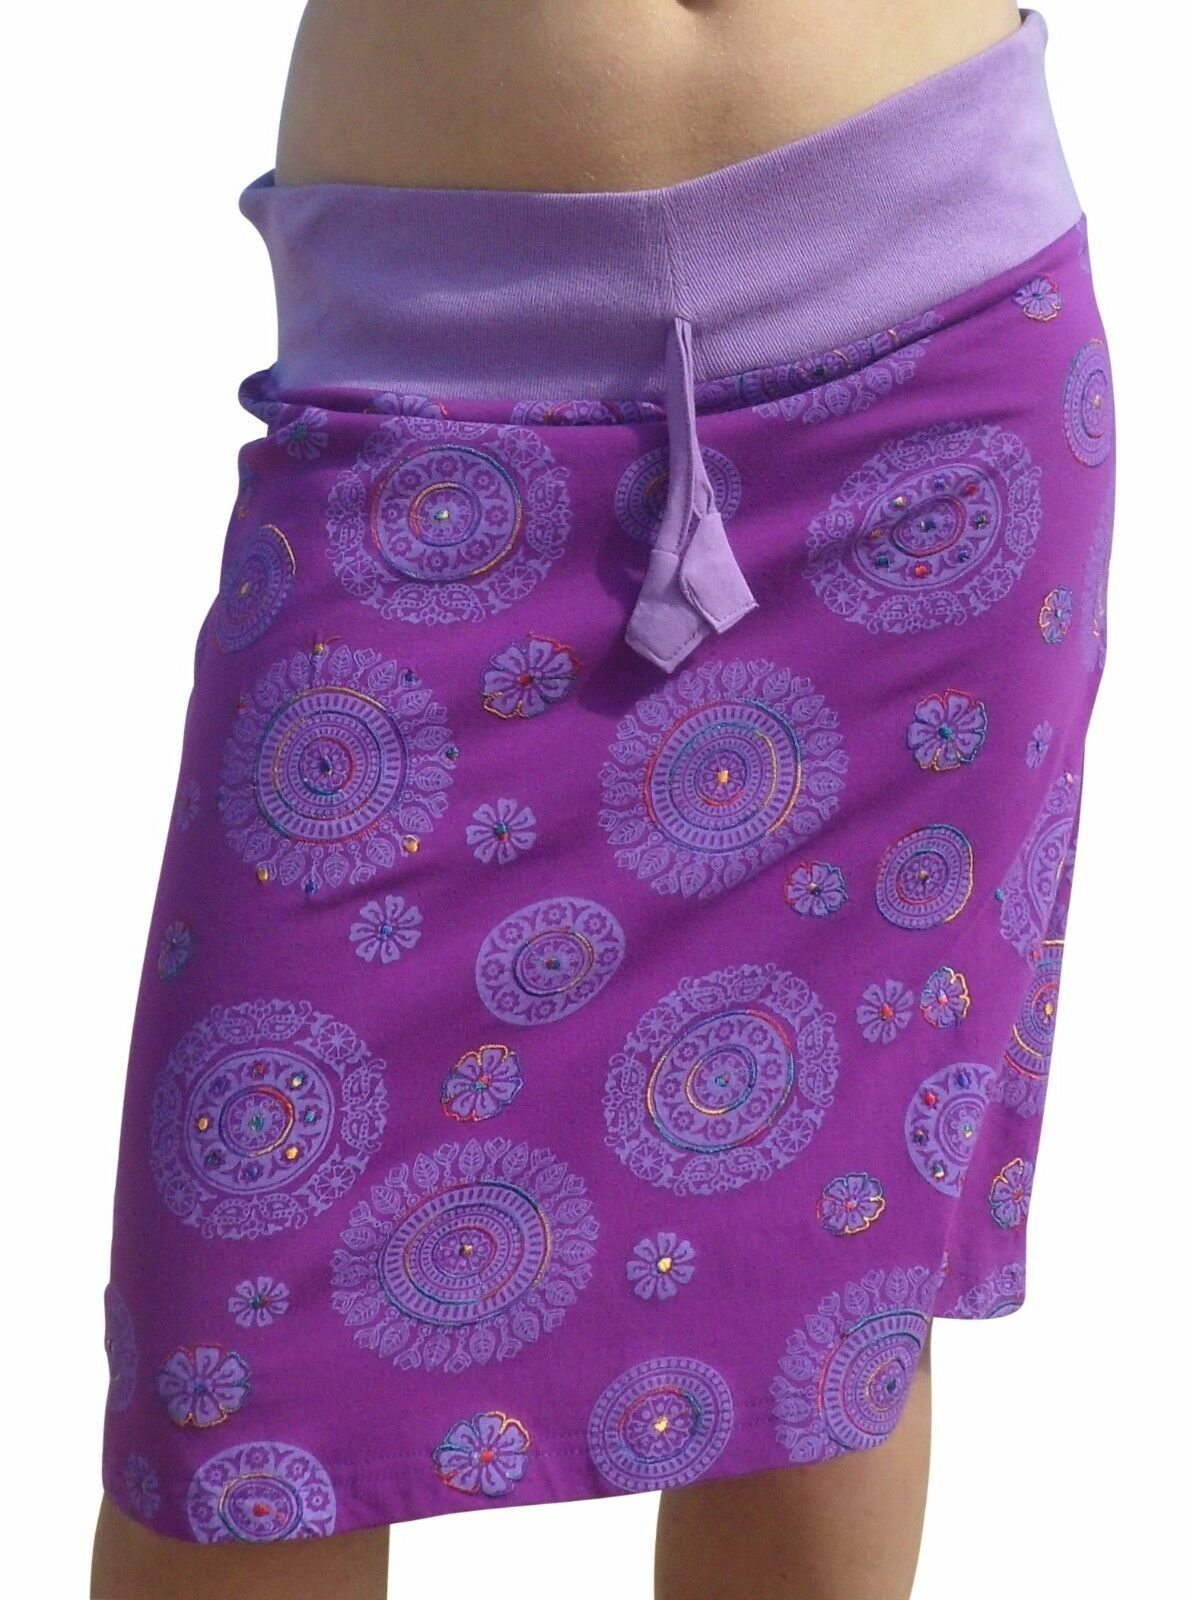 FAIR TRADE COTTON DRAWSTRING PRINTED HAND EMBROIDERED SKIRT FREE SIZE 10 - 18